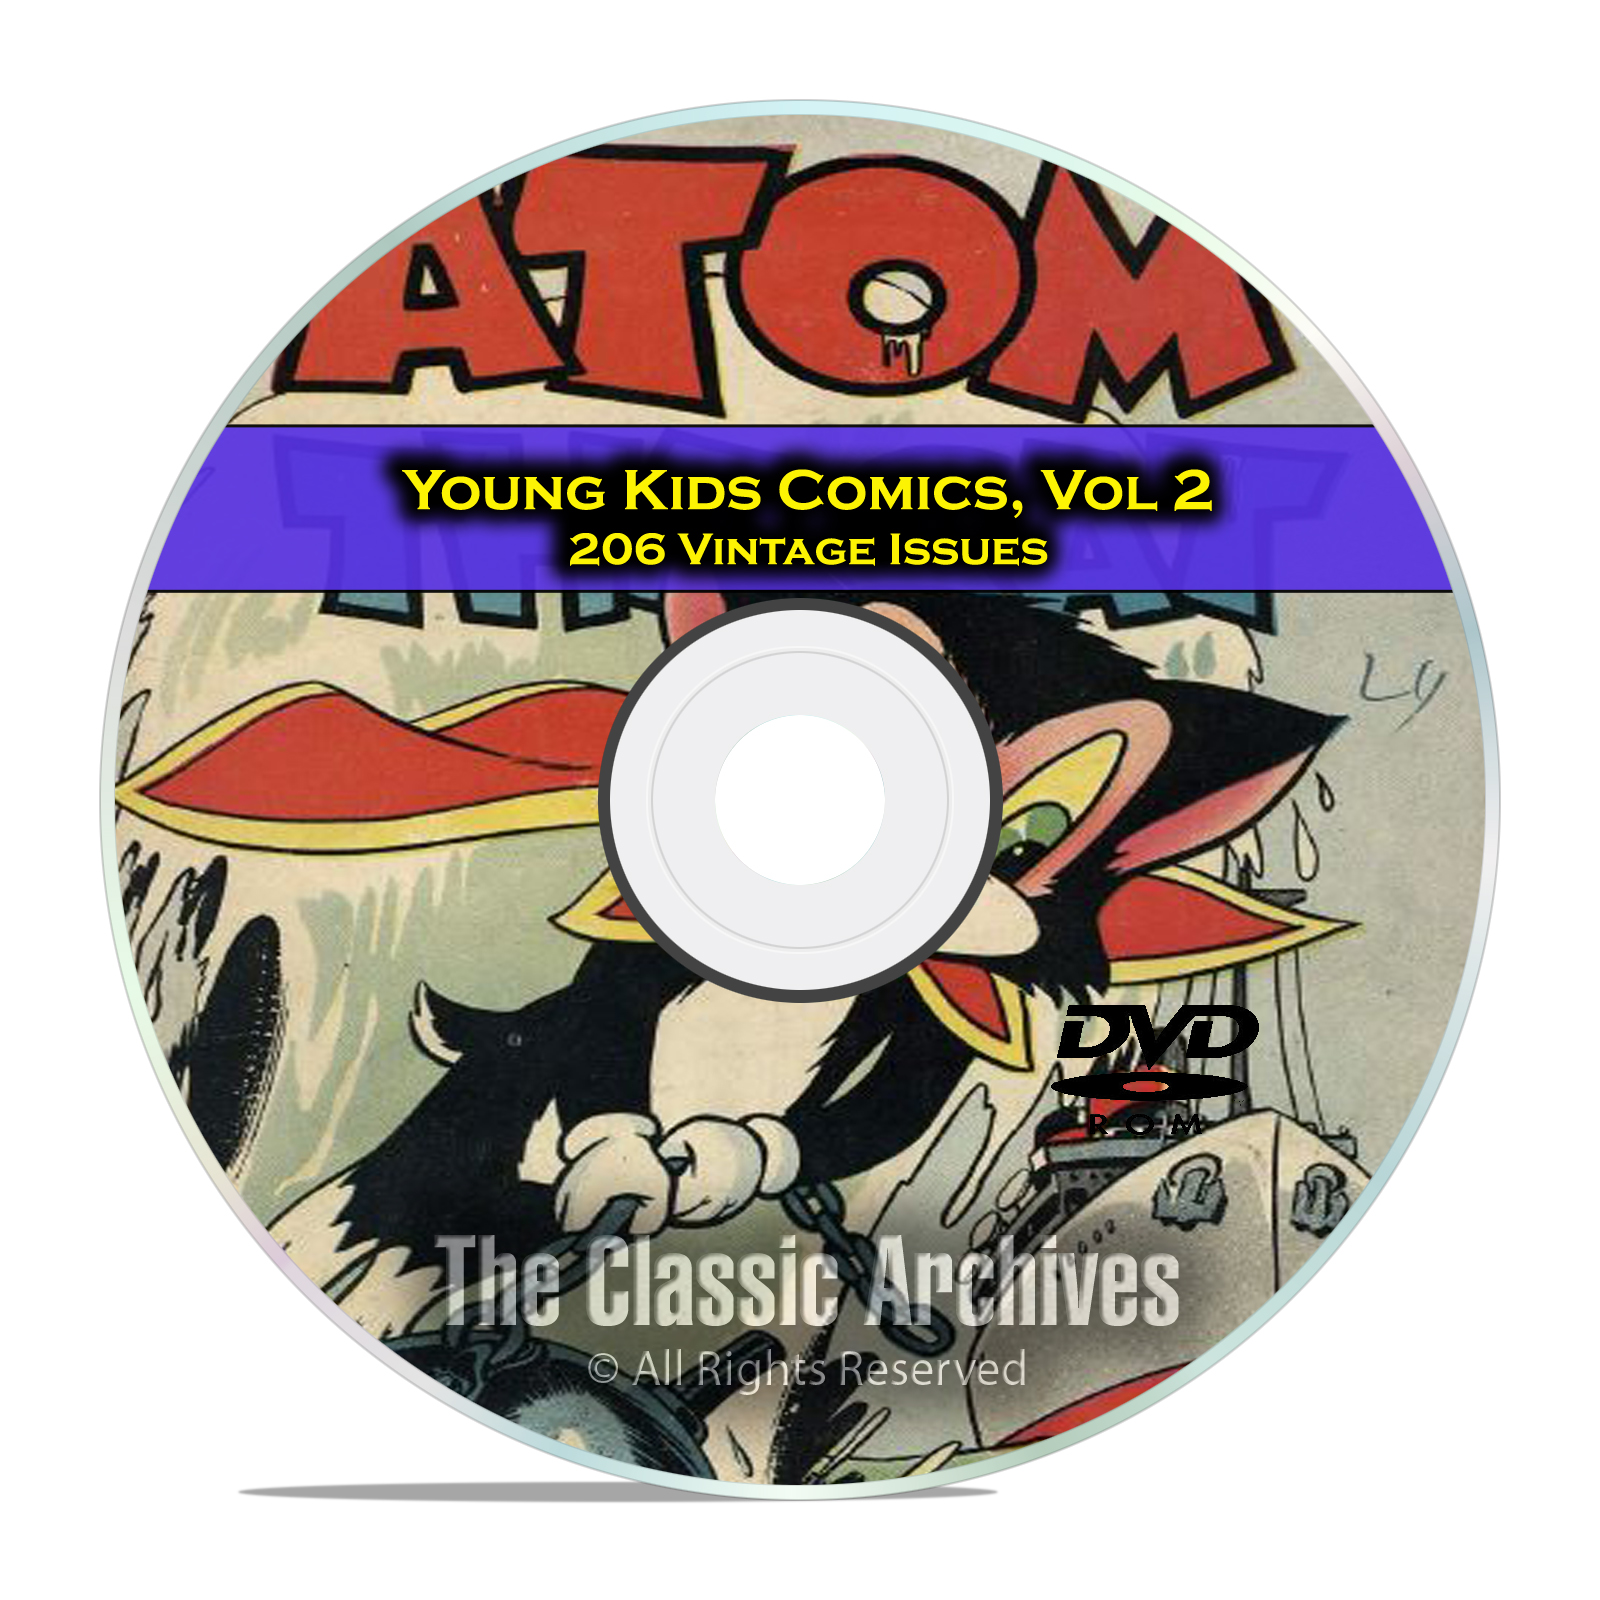 Young Kids Comics, Vol 2, Atomic Bunny, Atomic Mouse, Star Golden Age DVD